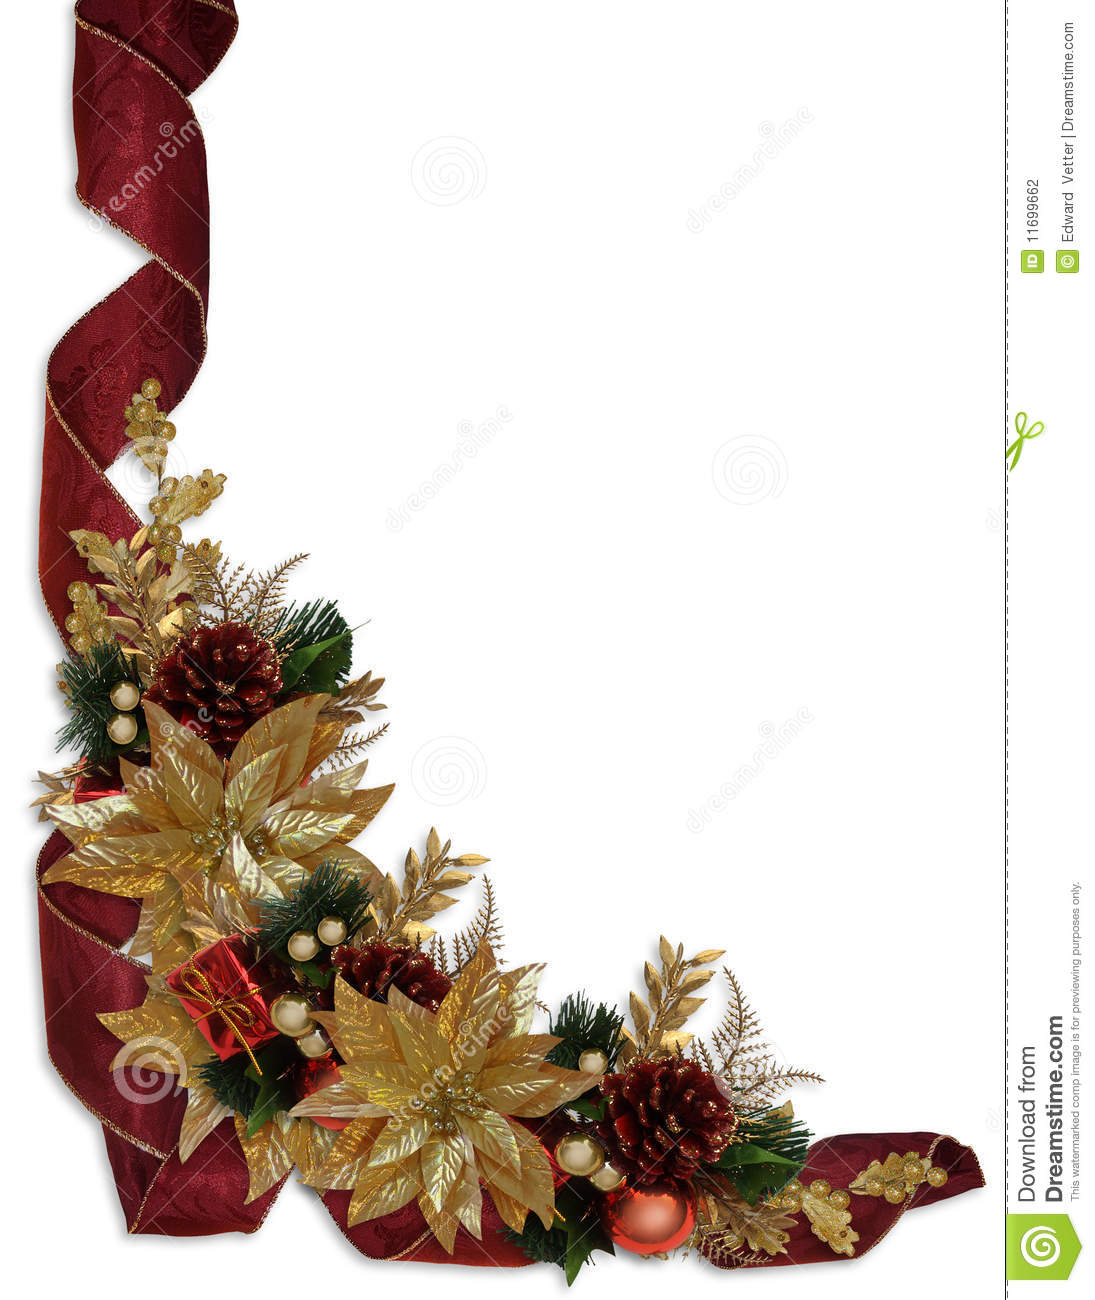 ... template with gold poinsettias, ornaments, holly, ribbons, copy space